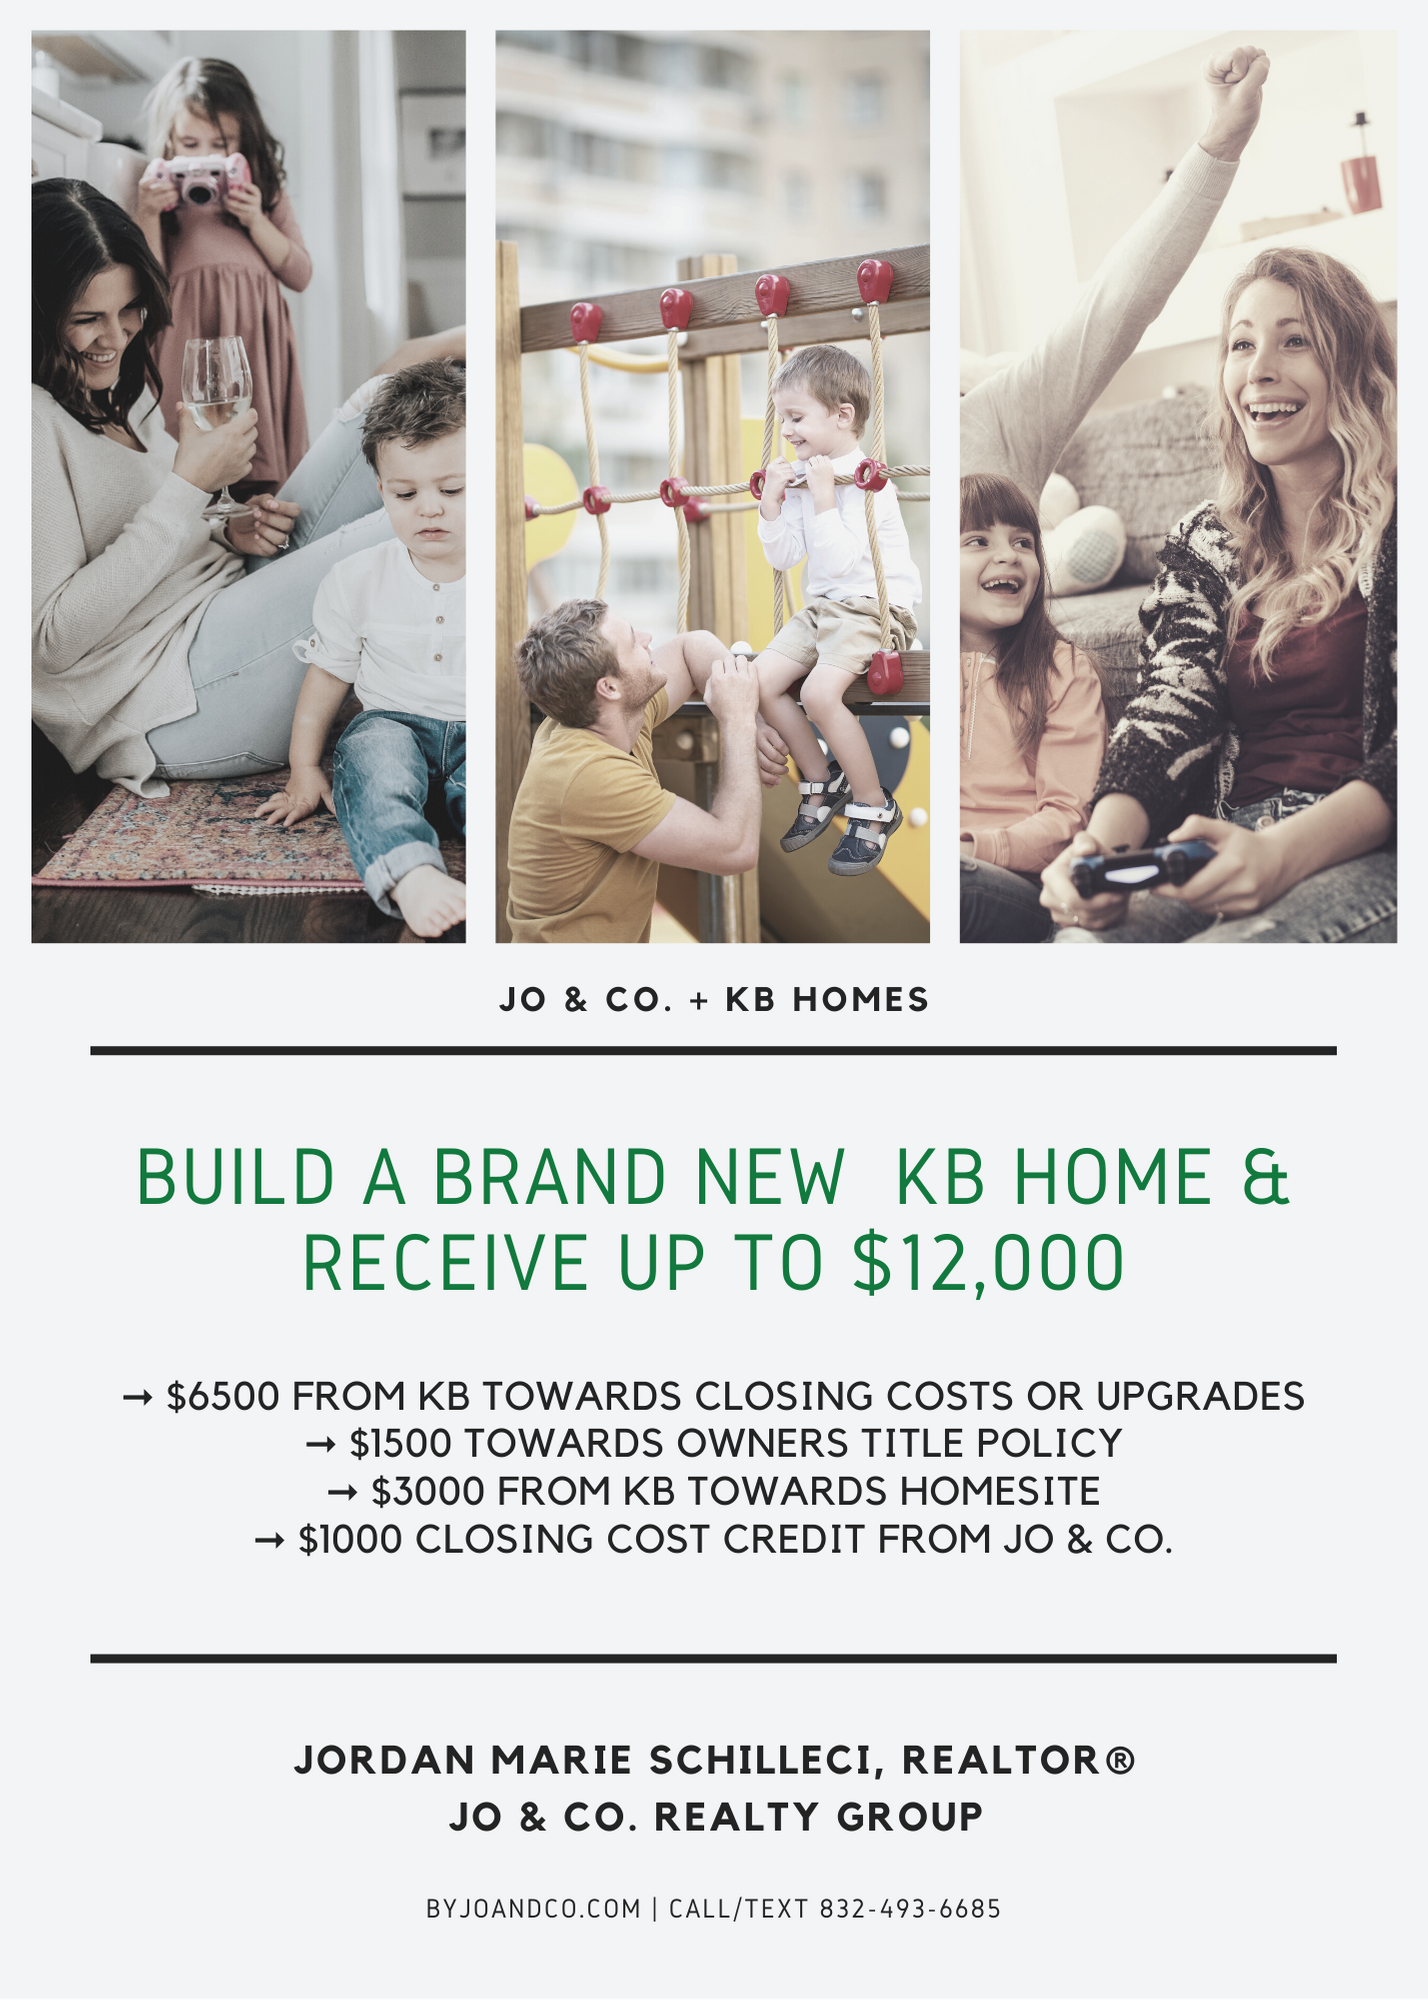 kb home flyer may 2020 with Jo and co realty group